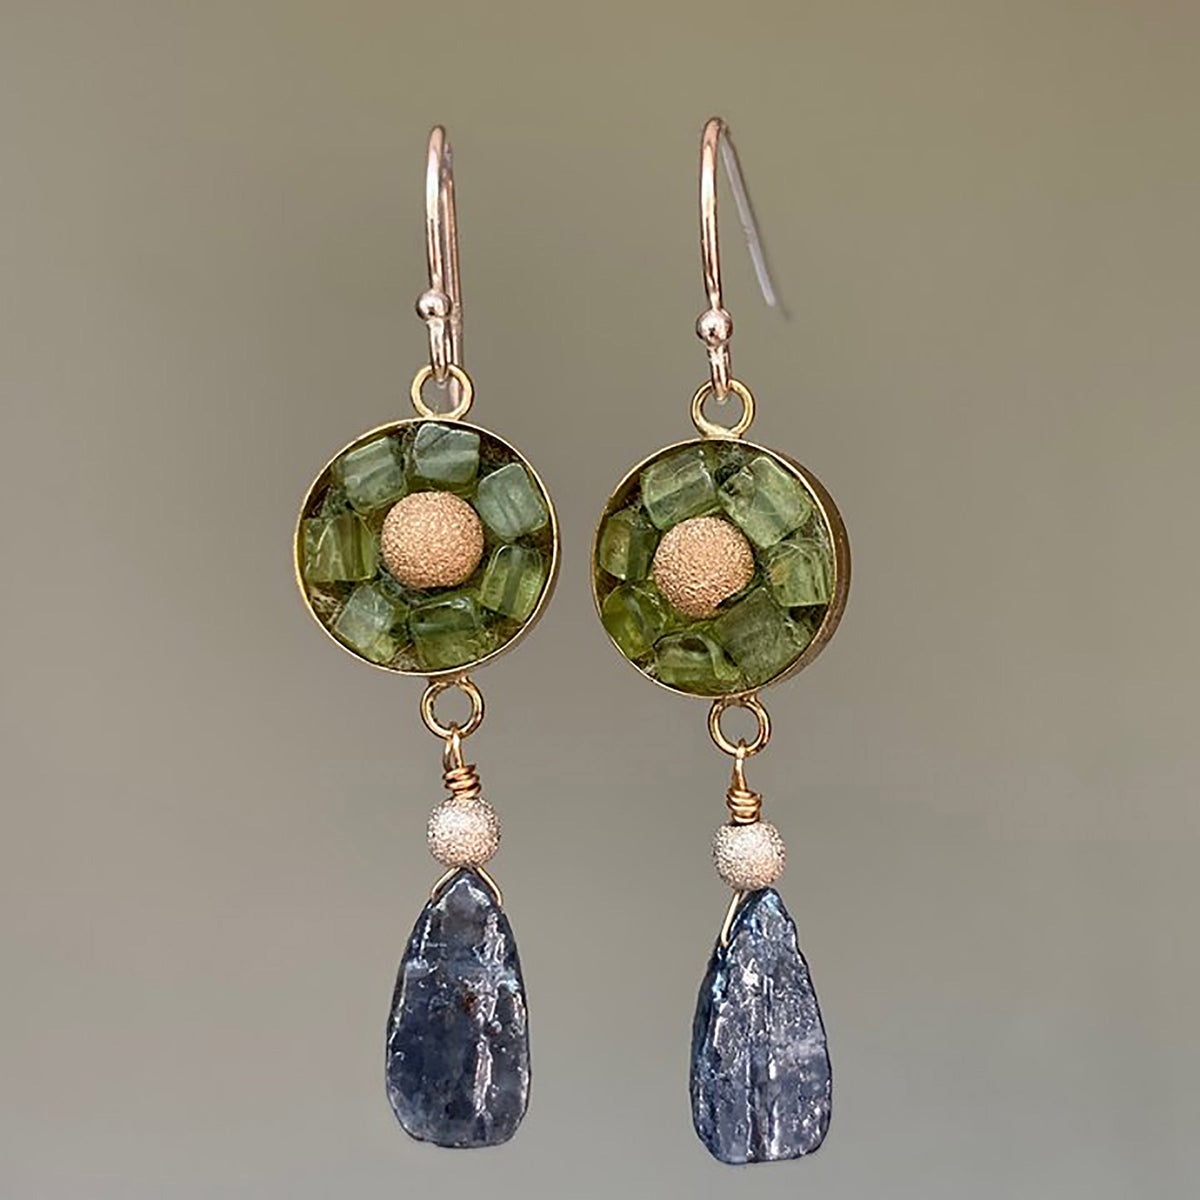 Gold, Peridot, and Kyanite mosaic earring